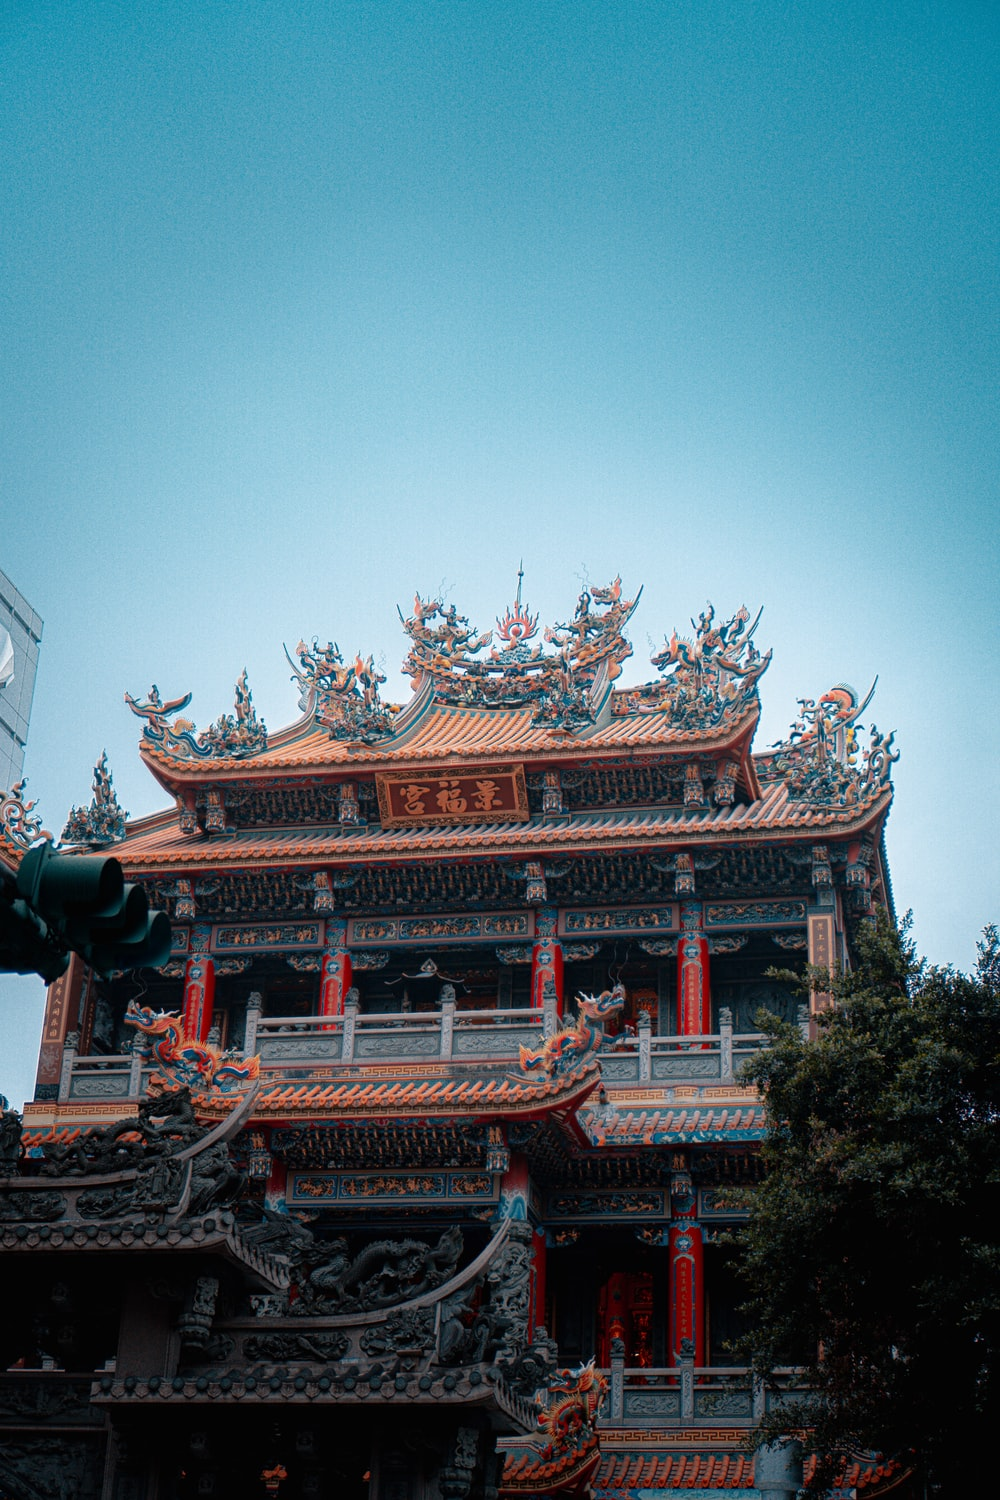 red and brown temple under blue sky during daytime